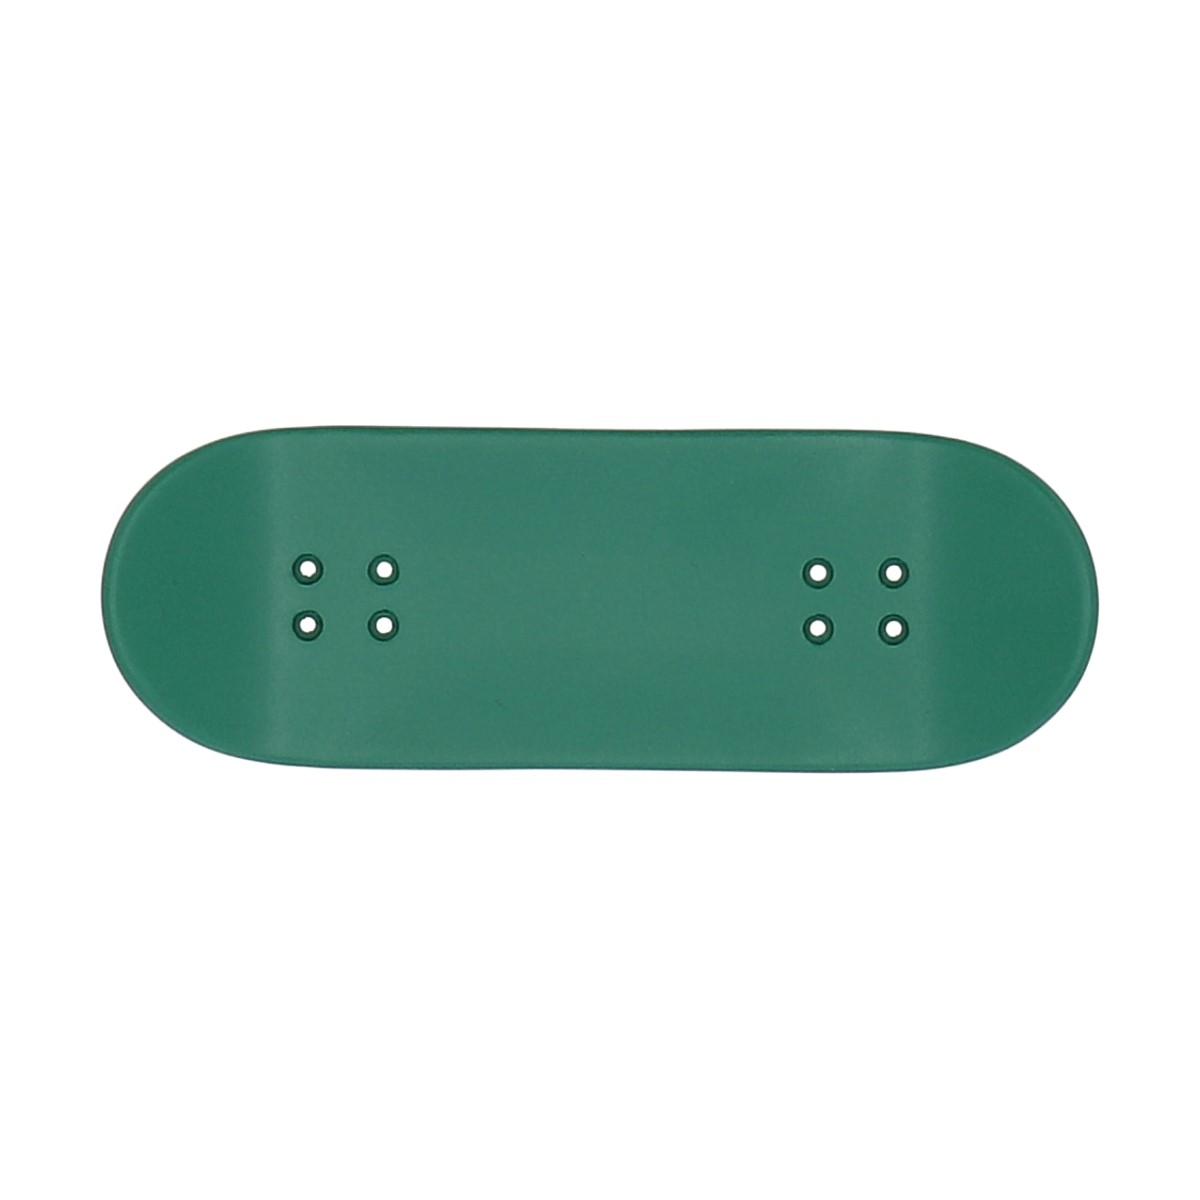 Deck Grand Fingers Full Color Green